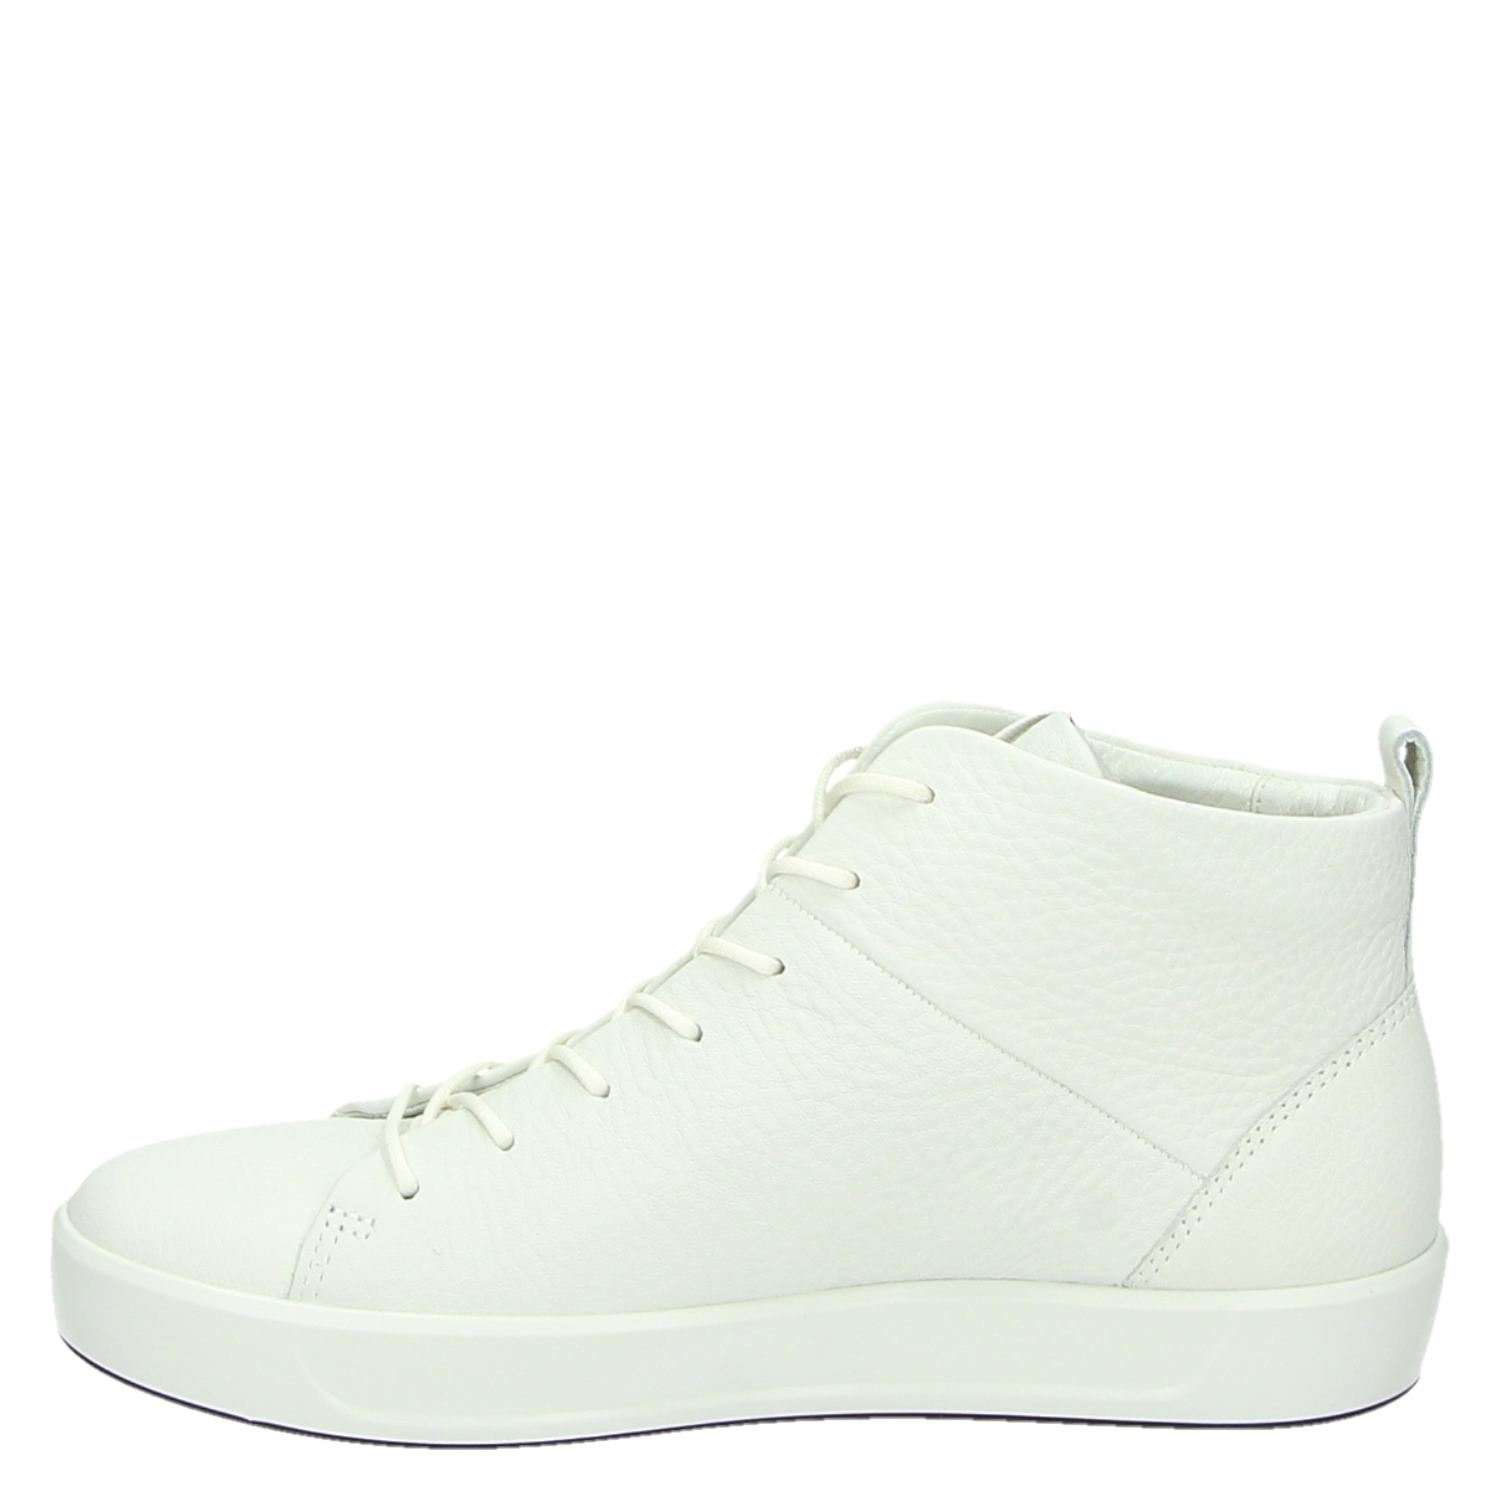 Ecco Soft 8 dames hoge sneakers wit